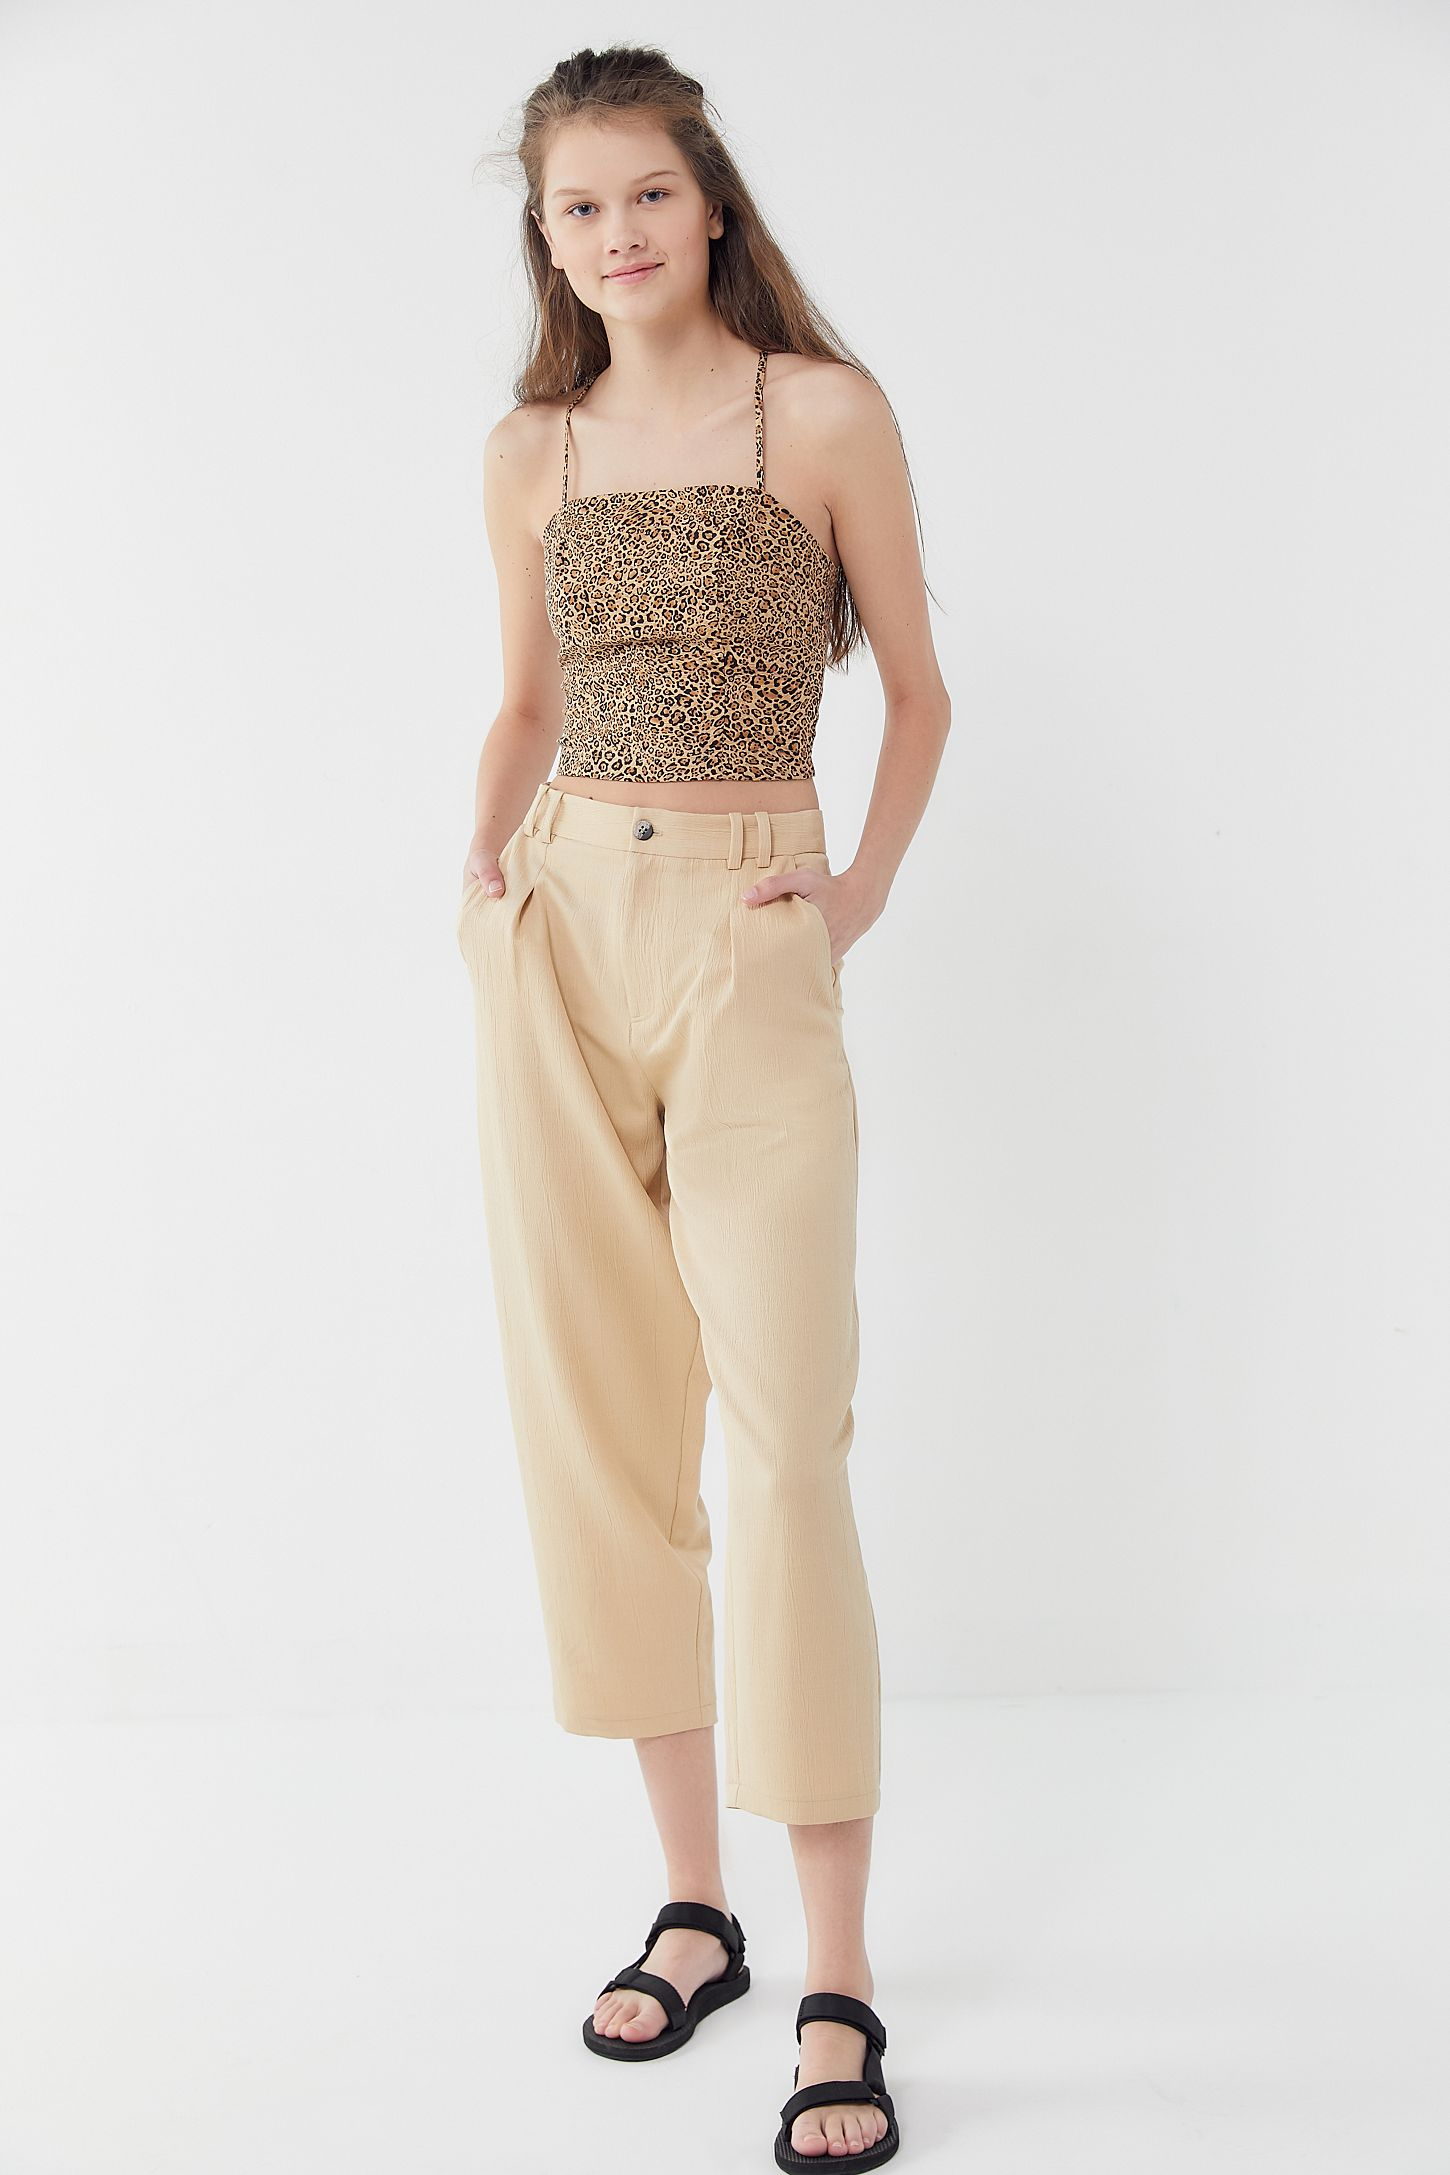 5237829850cd70 Double Tap to Zoom. Slide View: 4: UO Cardi Linen Strappy Tie-Back Cropped  Top